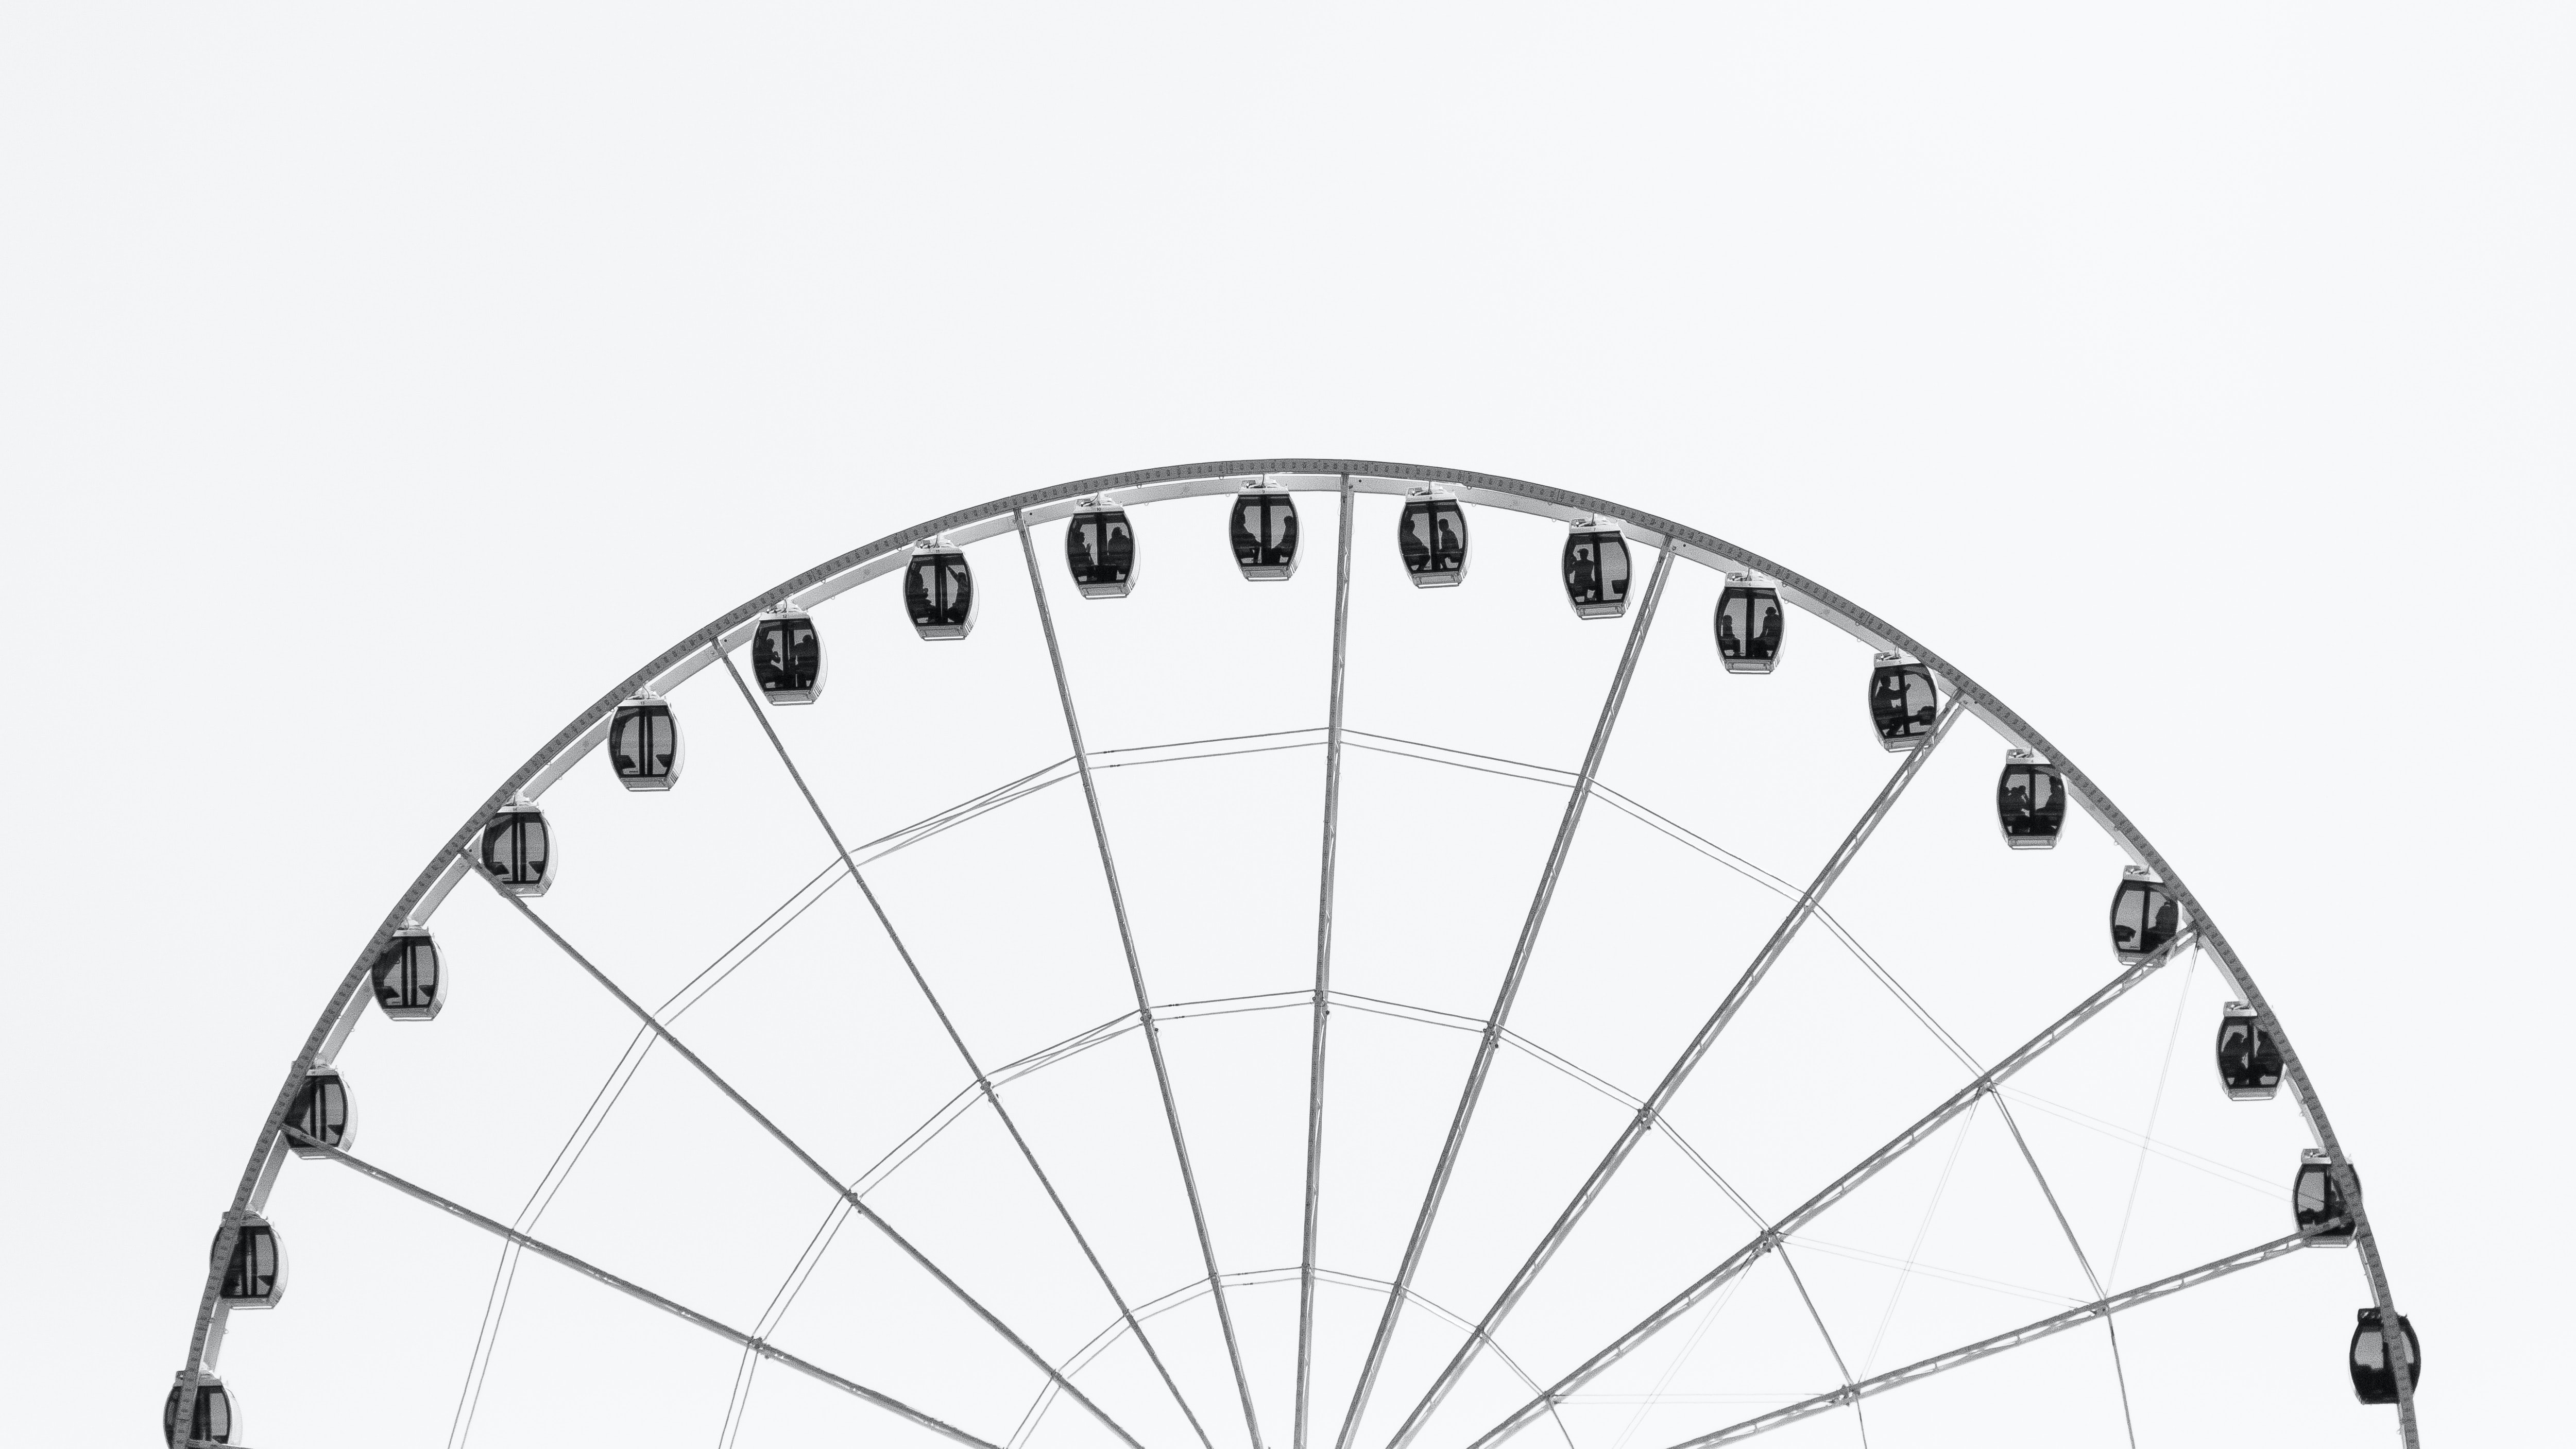 photo of grey and black ferris wheel during daytime